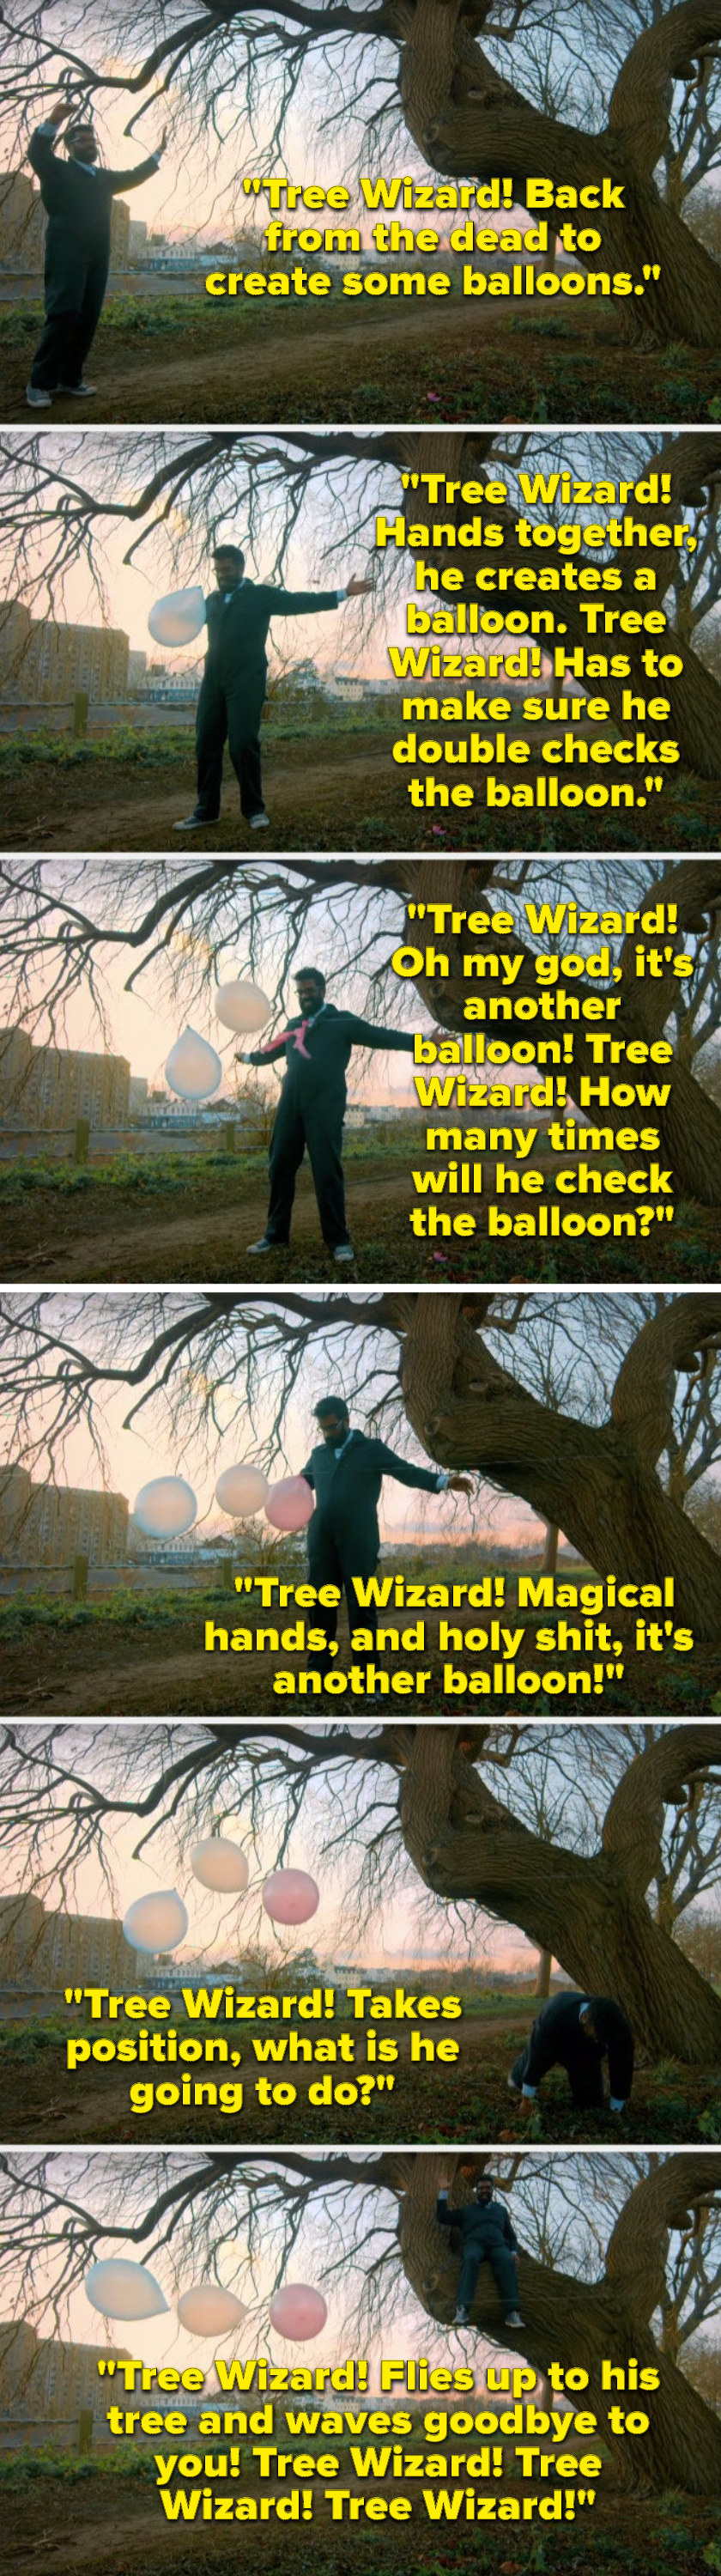 """Over footage of what he's singing, Romesh Ranganathan sings, """"Tree Wizard, hands together, he creates a balloon, Tree Wizard, it's another balloon, Tree Wizard, holy shit, another balloon, Tree Wizard, flies up to his tree and waves goodbye to you"""""""